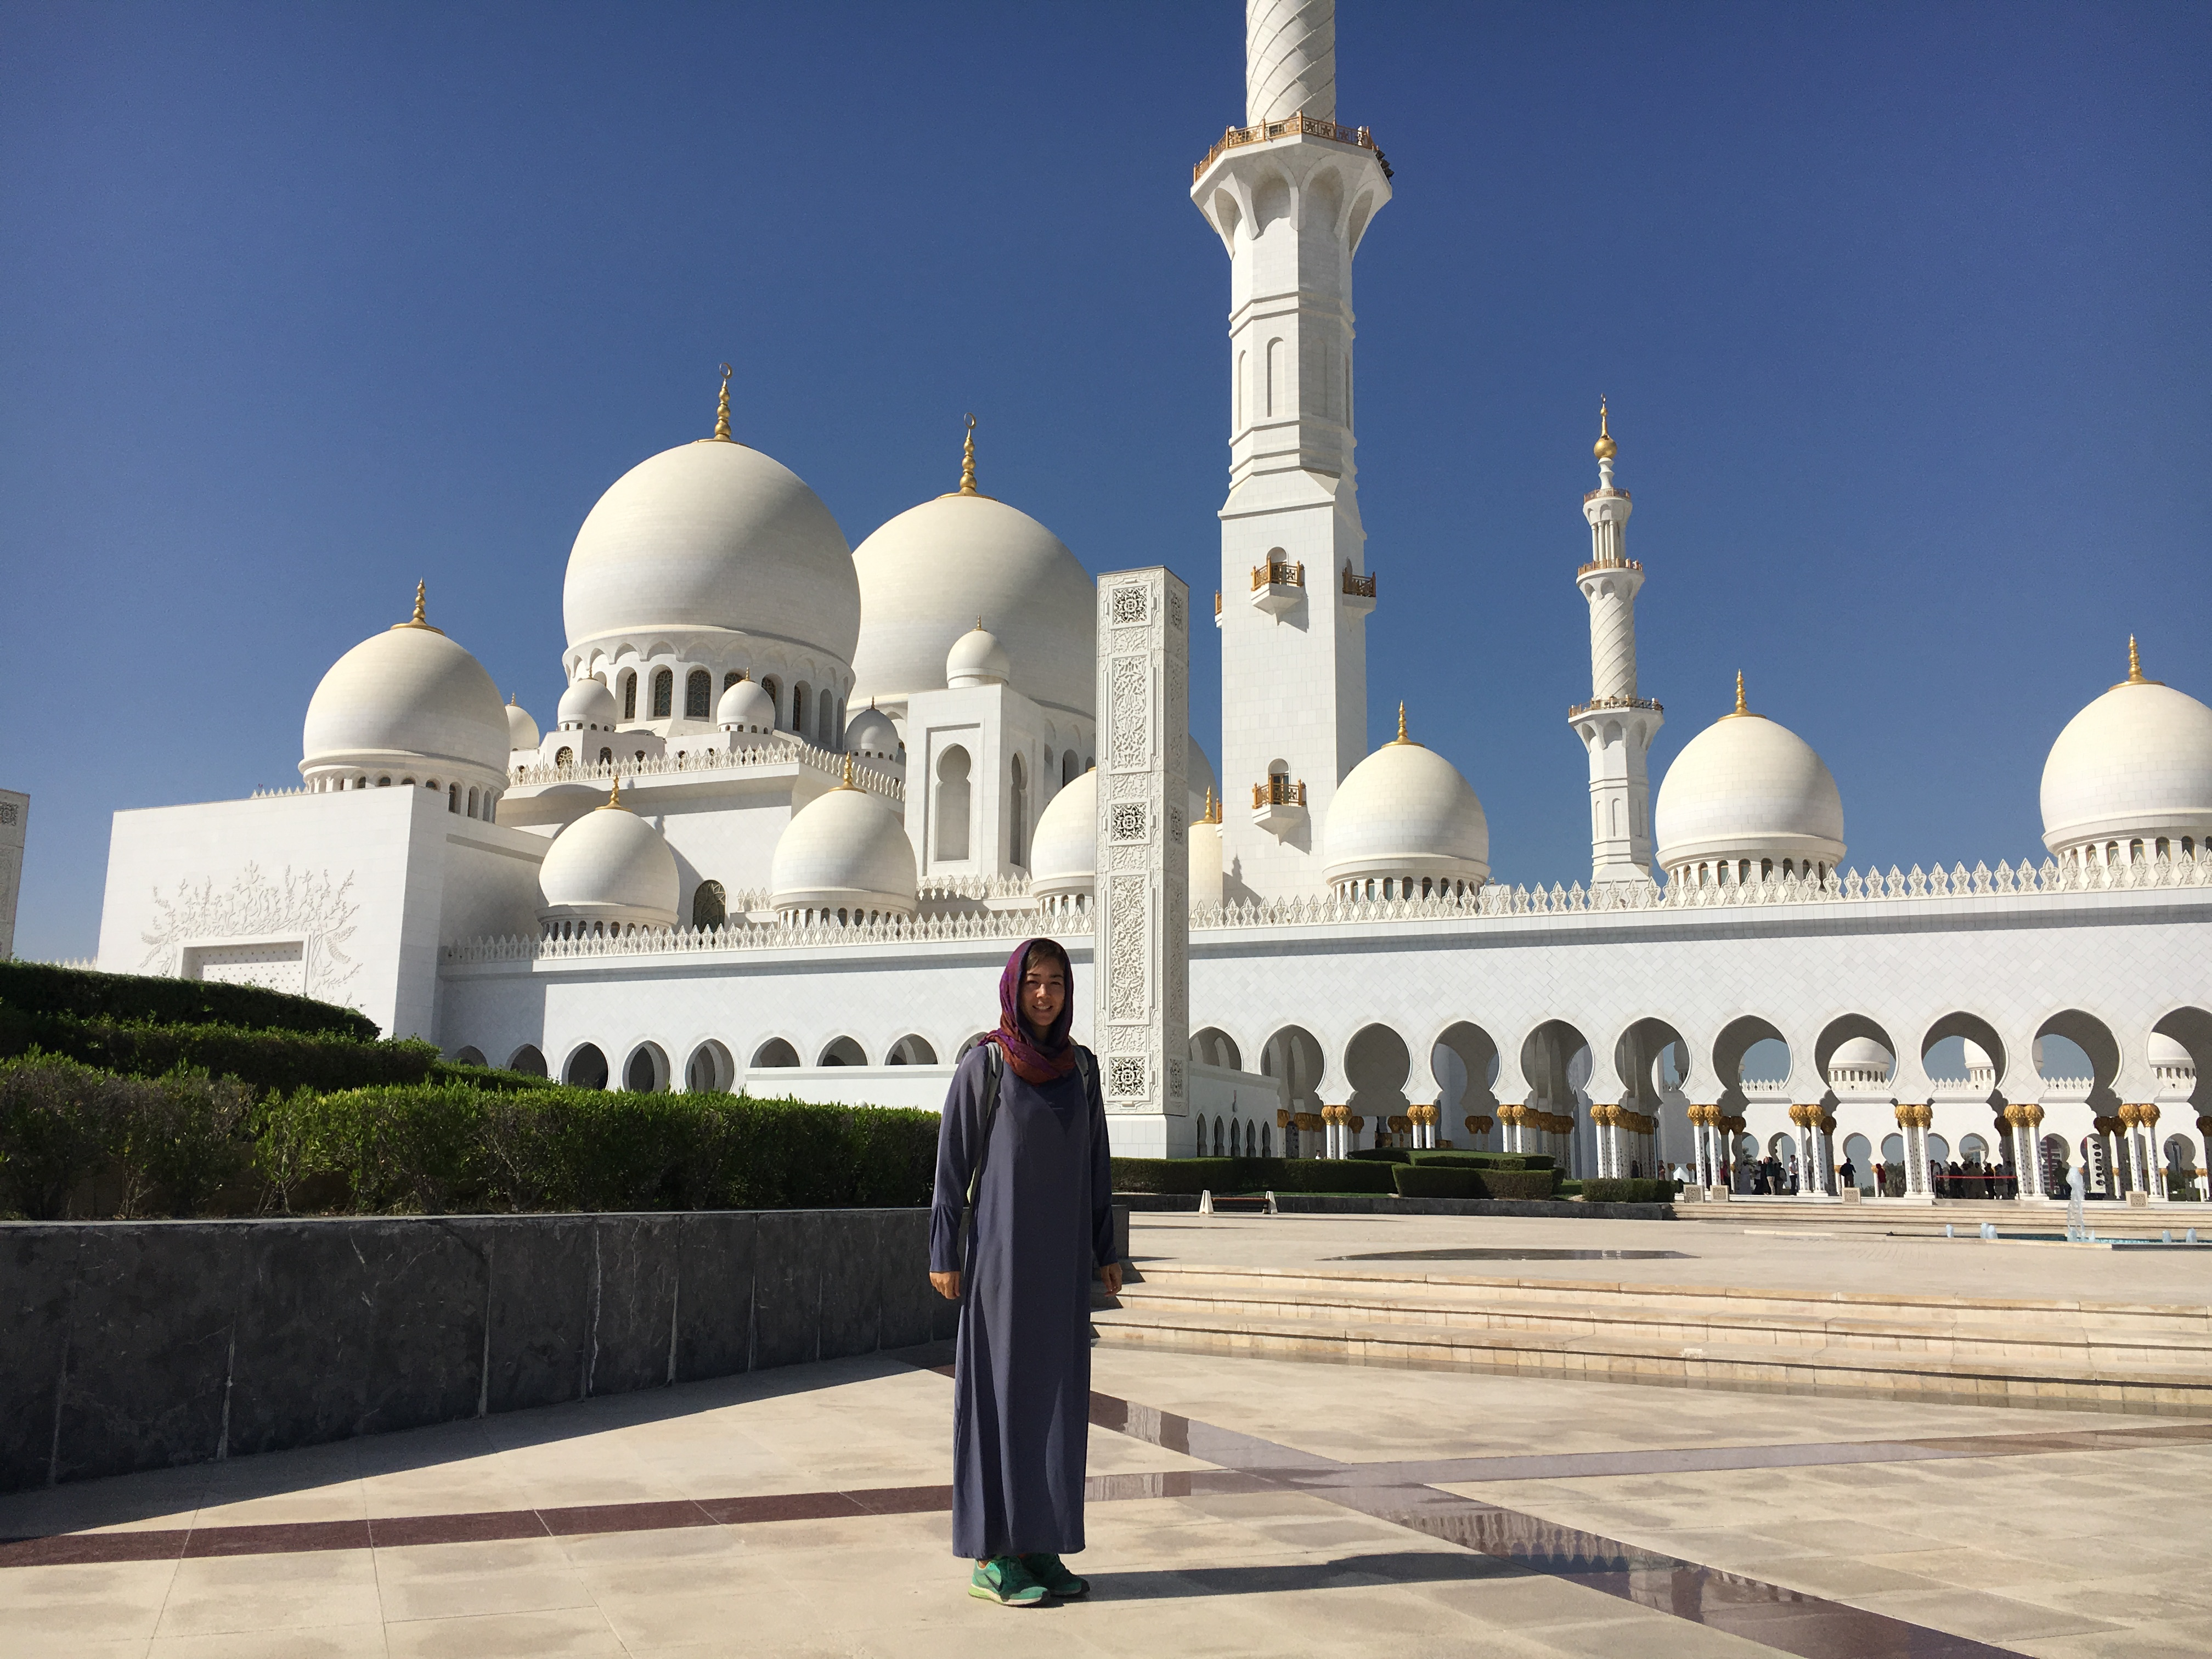 How To Get From Dubai To Sheik Zayed Grand Mosque In Abu